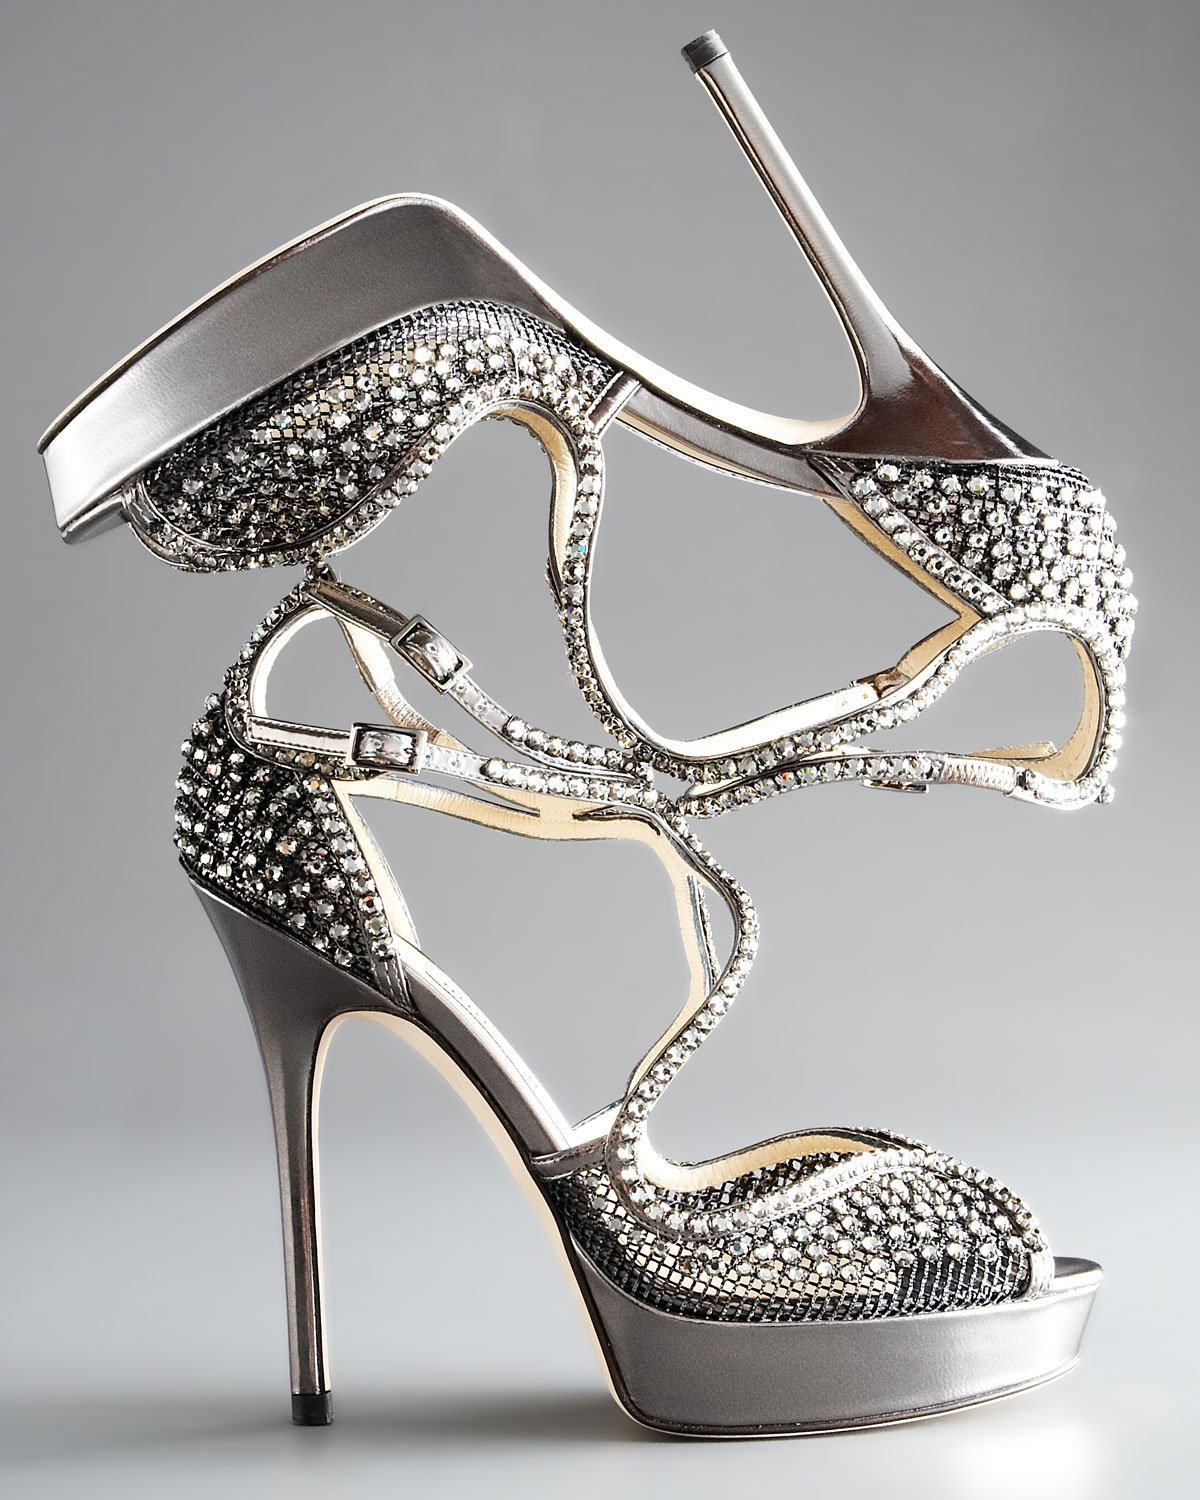 2f4063a352961 Welcome Back Carrie Bradshaw And Crystal Embellished Shoes